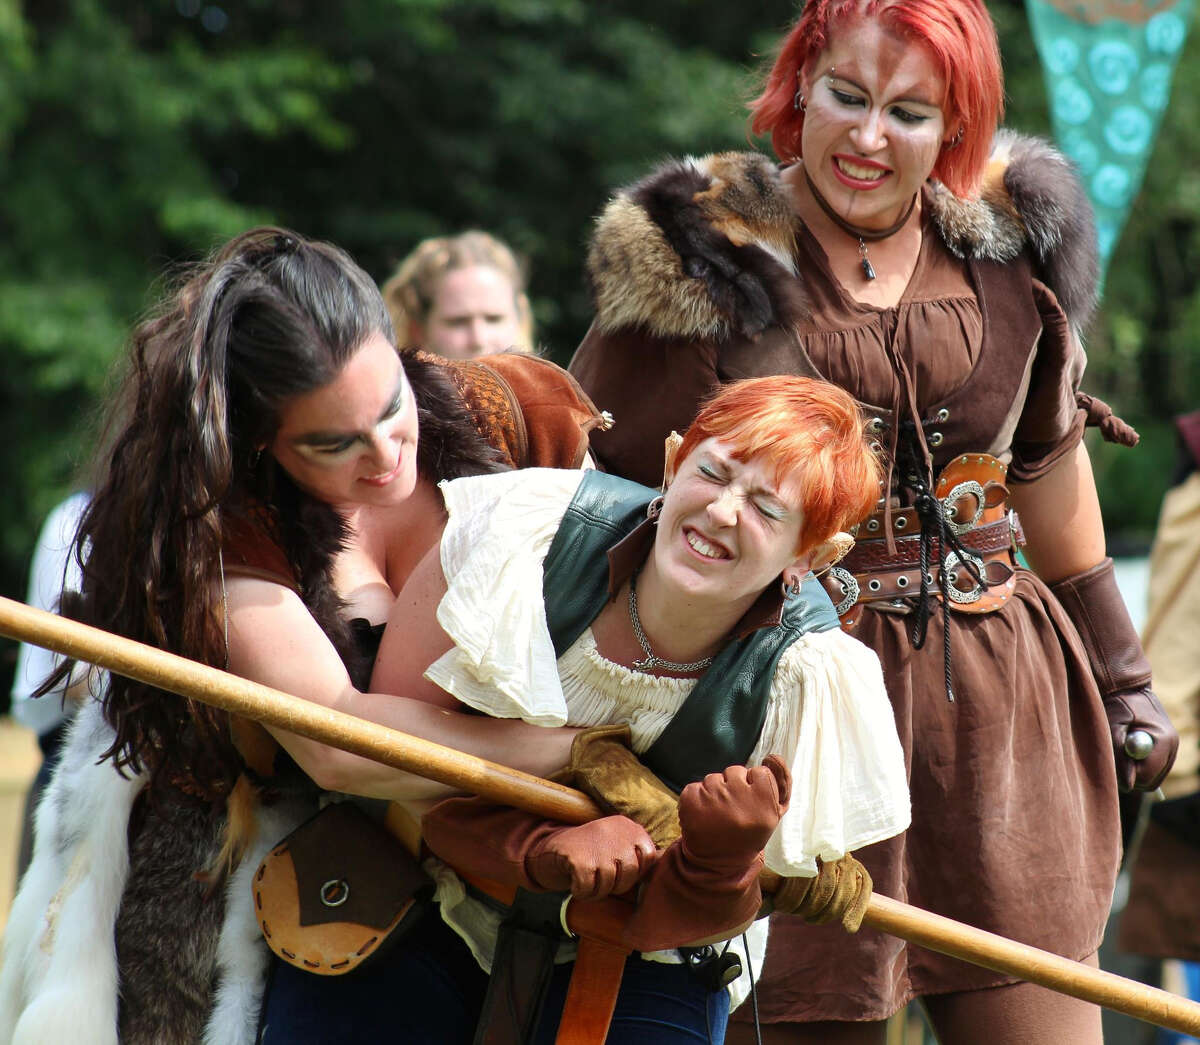 It's a battle between clans at the Midsummer Fantasy Renaissance Faire in Ansonia, weekends from June 22 through July 7.